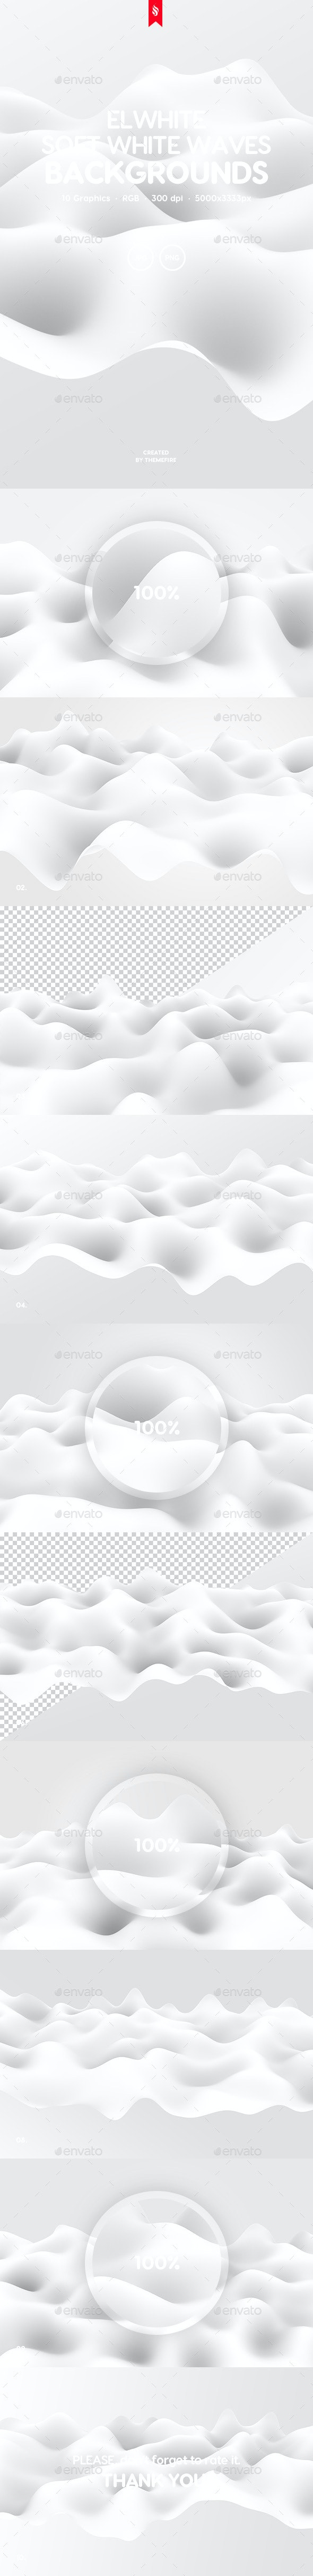 Elwhite - Soft White Waves Backgrounds Pack - 3D Backgrounds